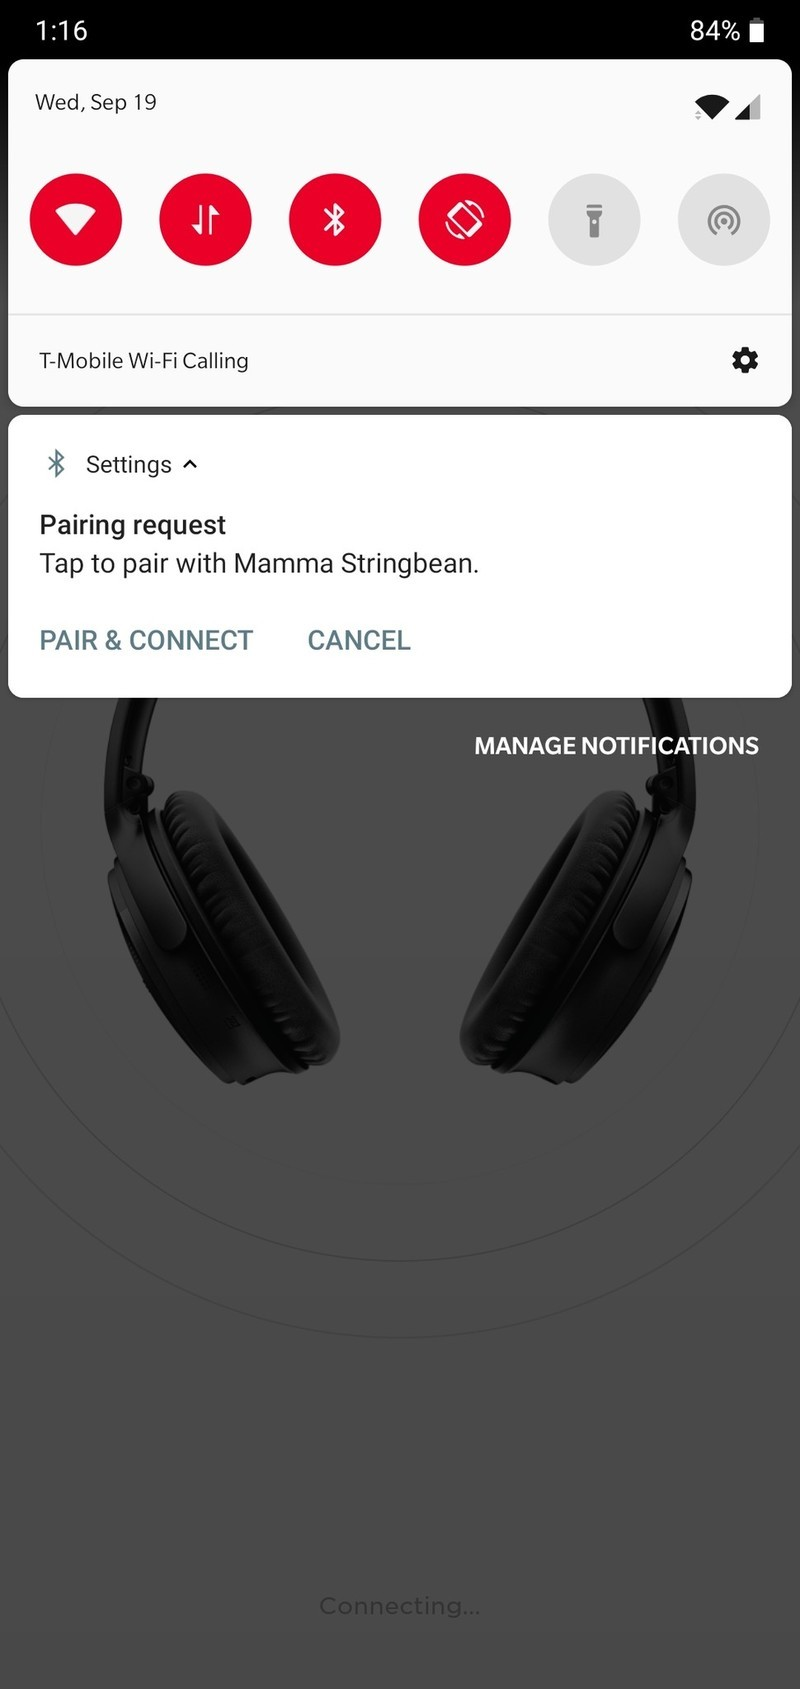 bose-qc35-how-to-pair-14.jpg?itok=4o2DO7